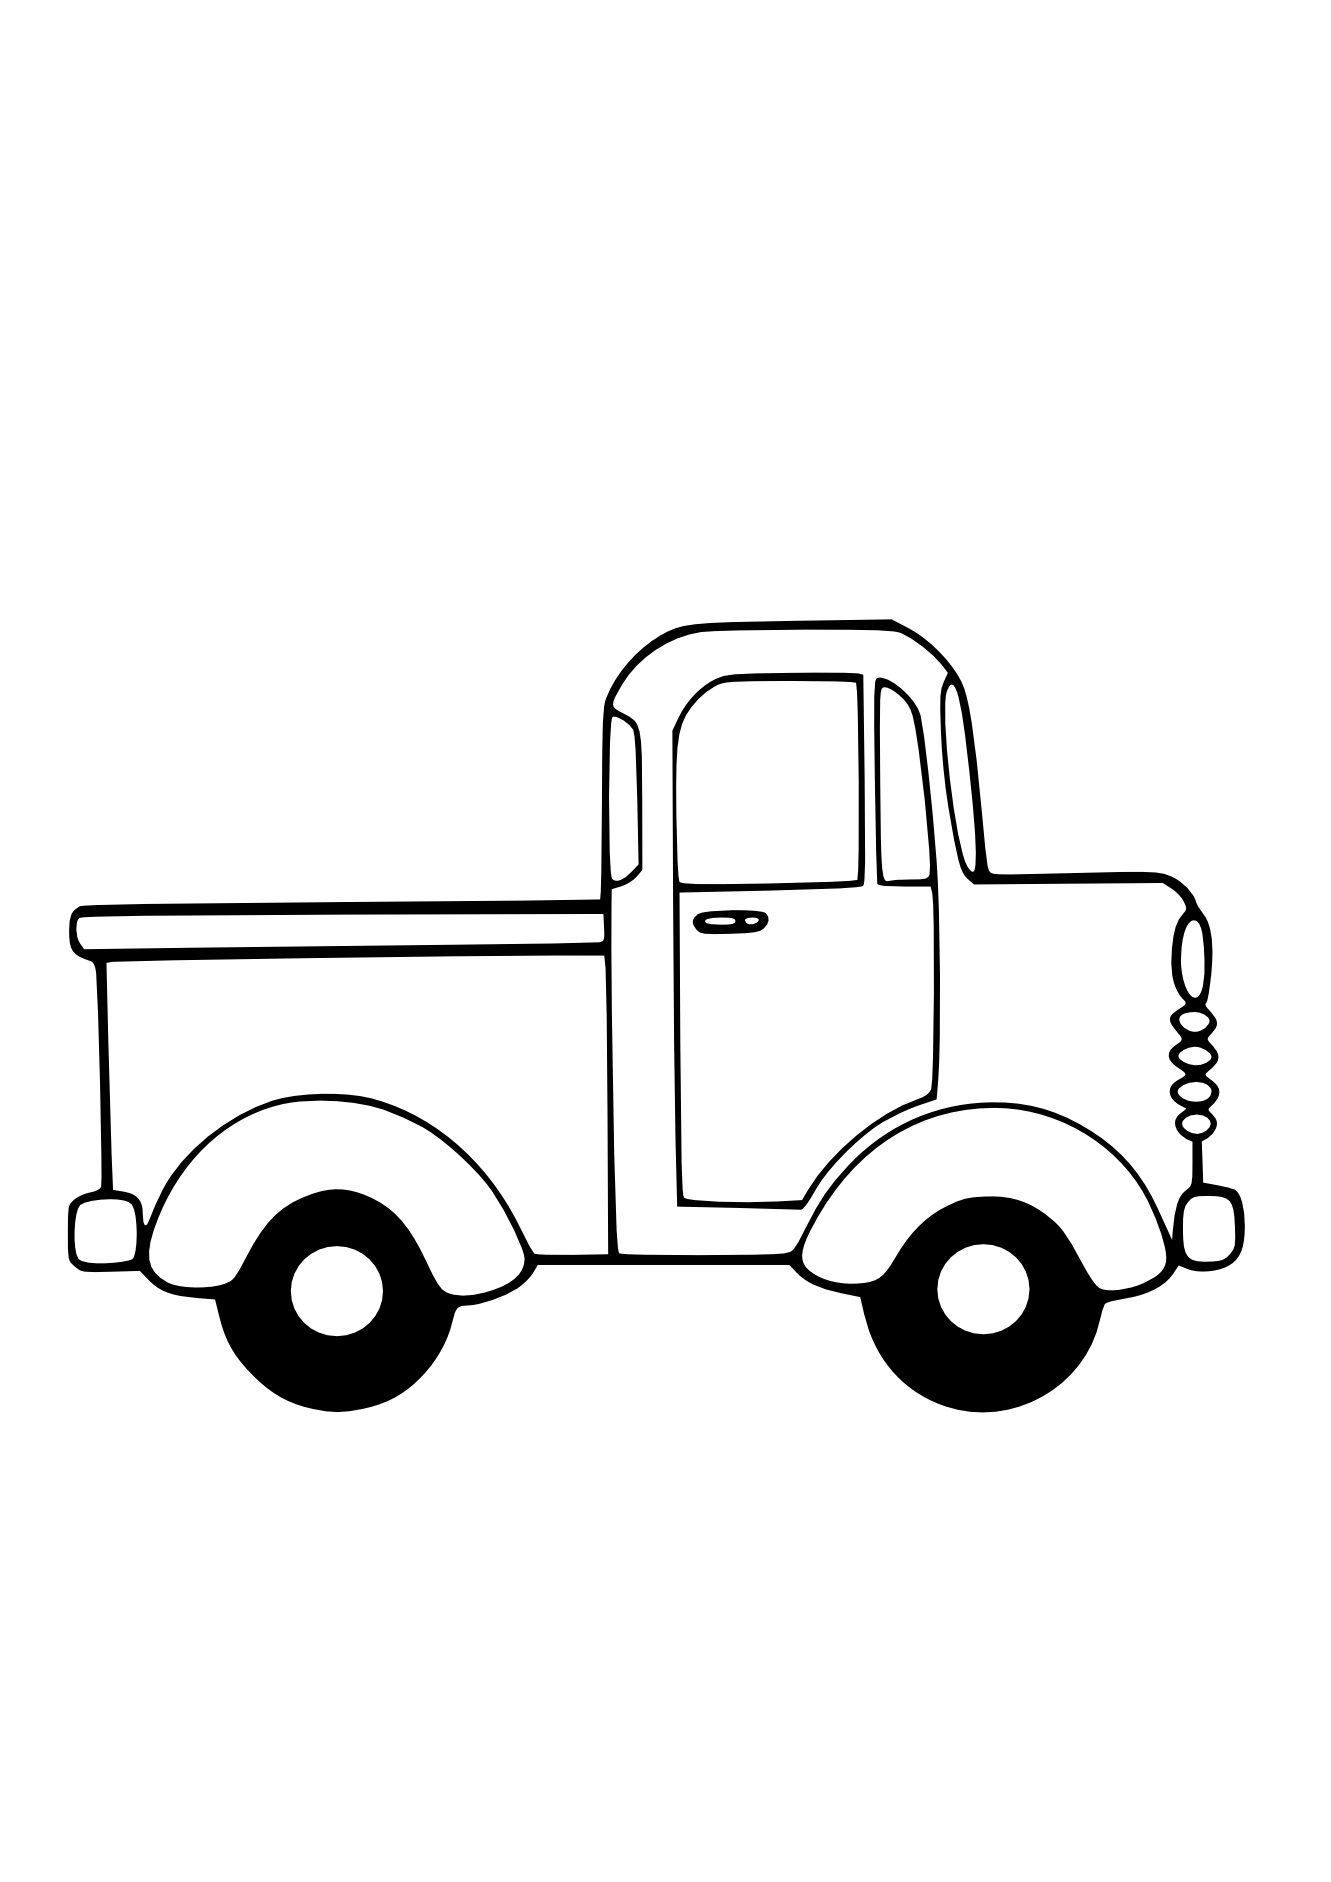 Chevy drawing black and white. Truck line art christmas